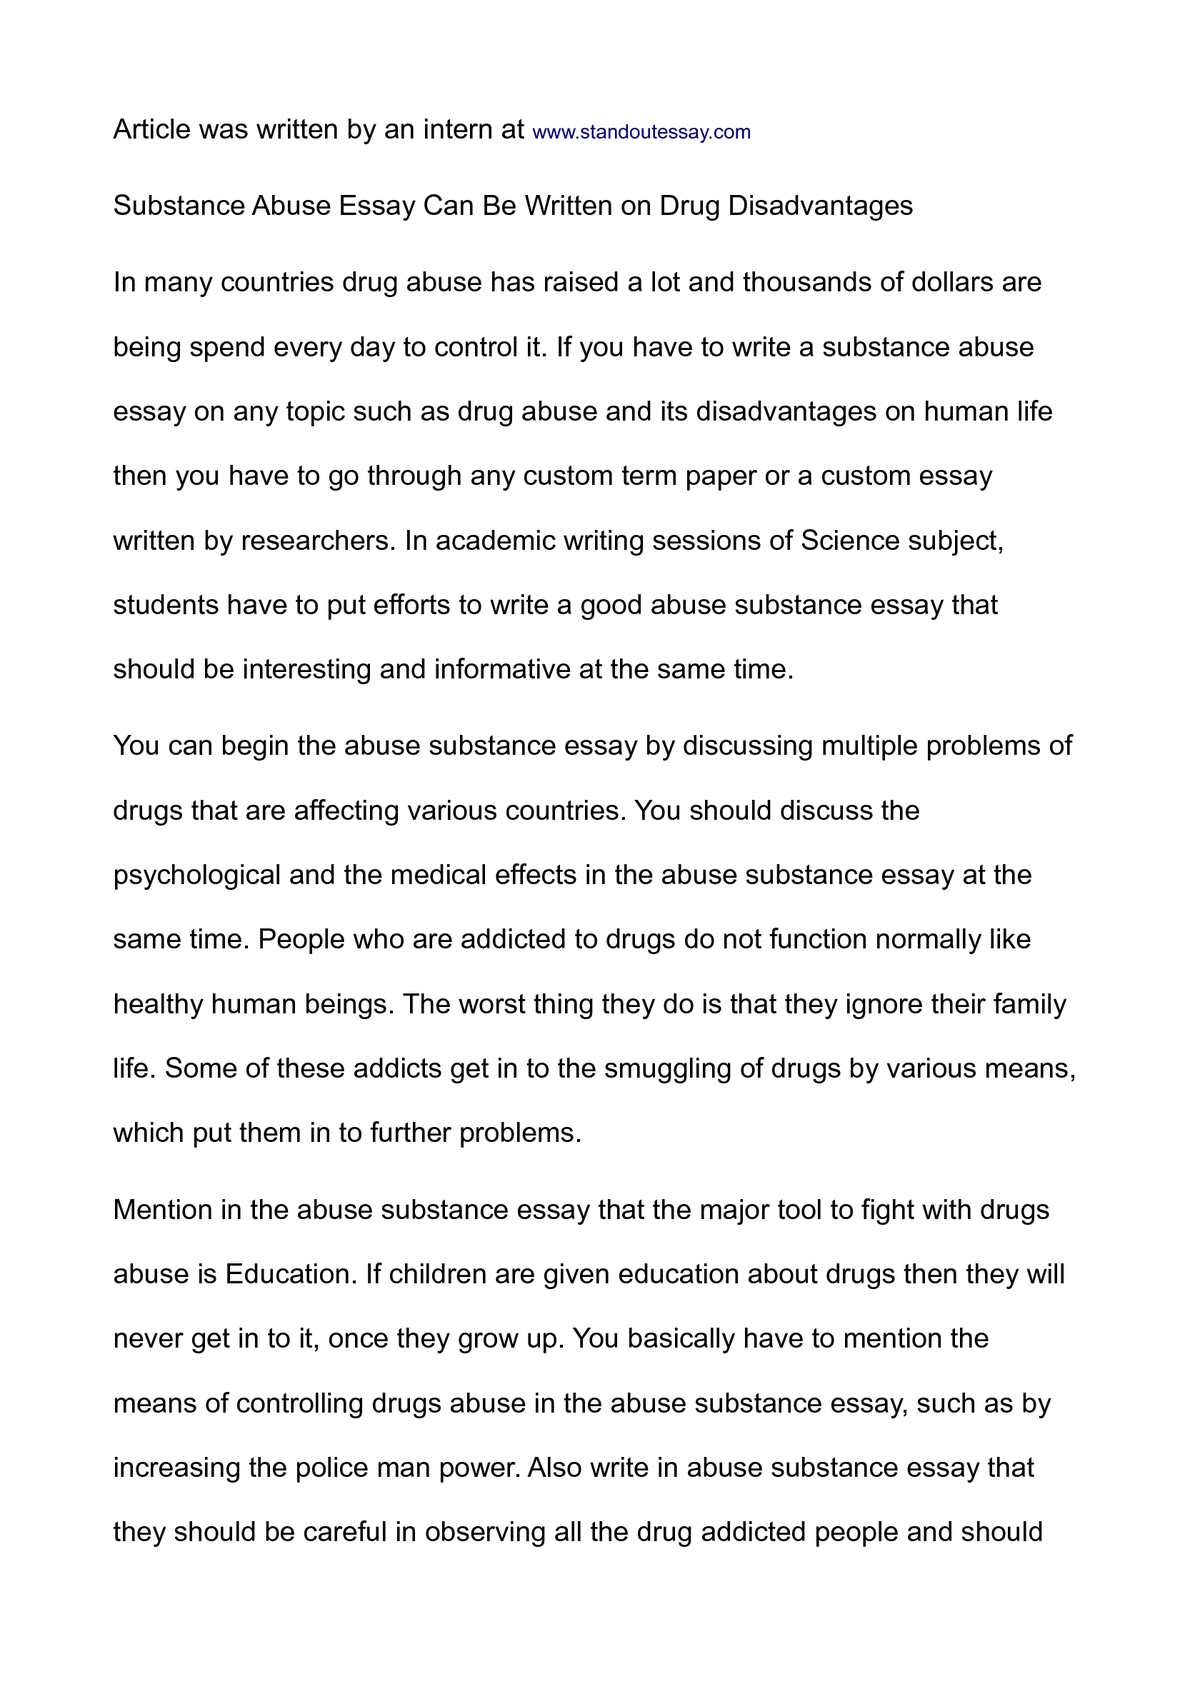 sex trafficking essay essay on importance essay on importance of  substance abuse essay essays english essay drug abuse and calamatilde131acirccopyo substance abuse essay can be written